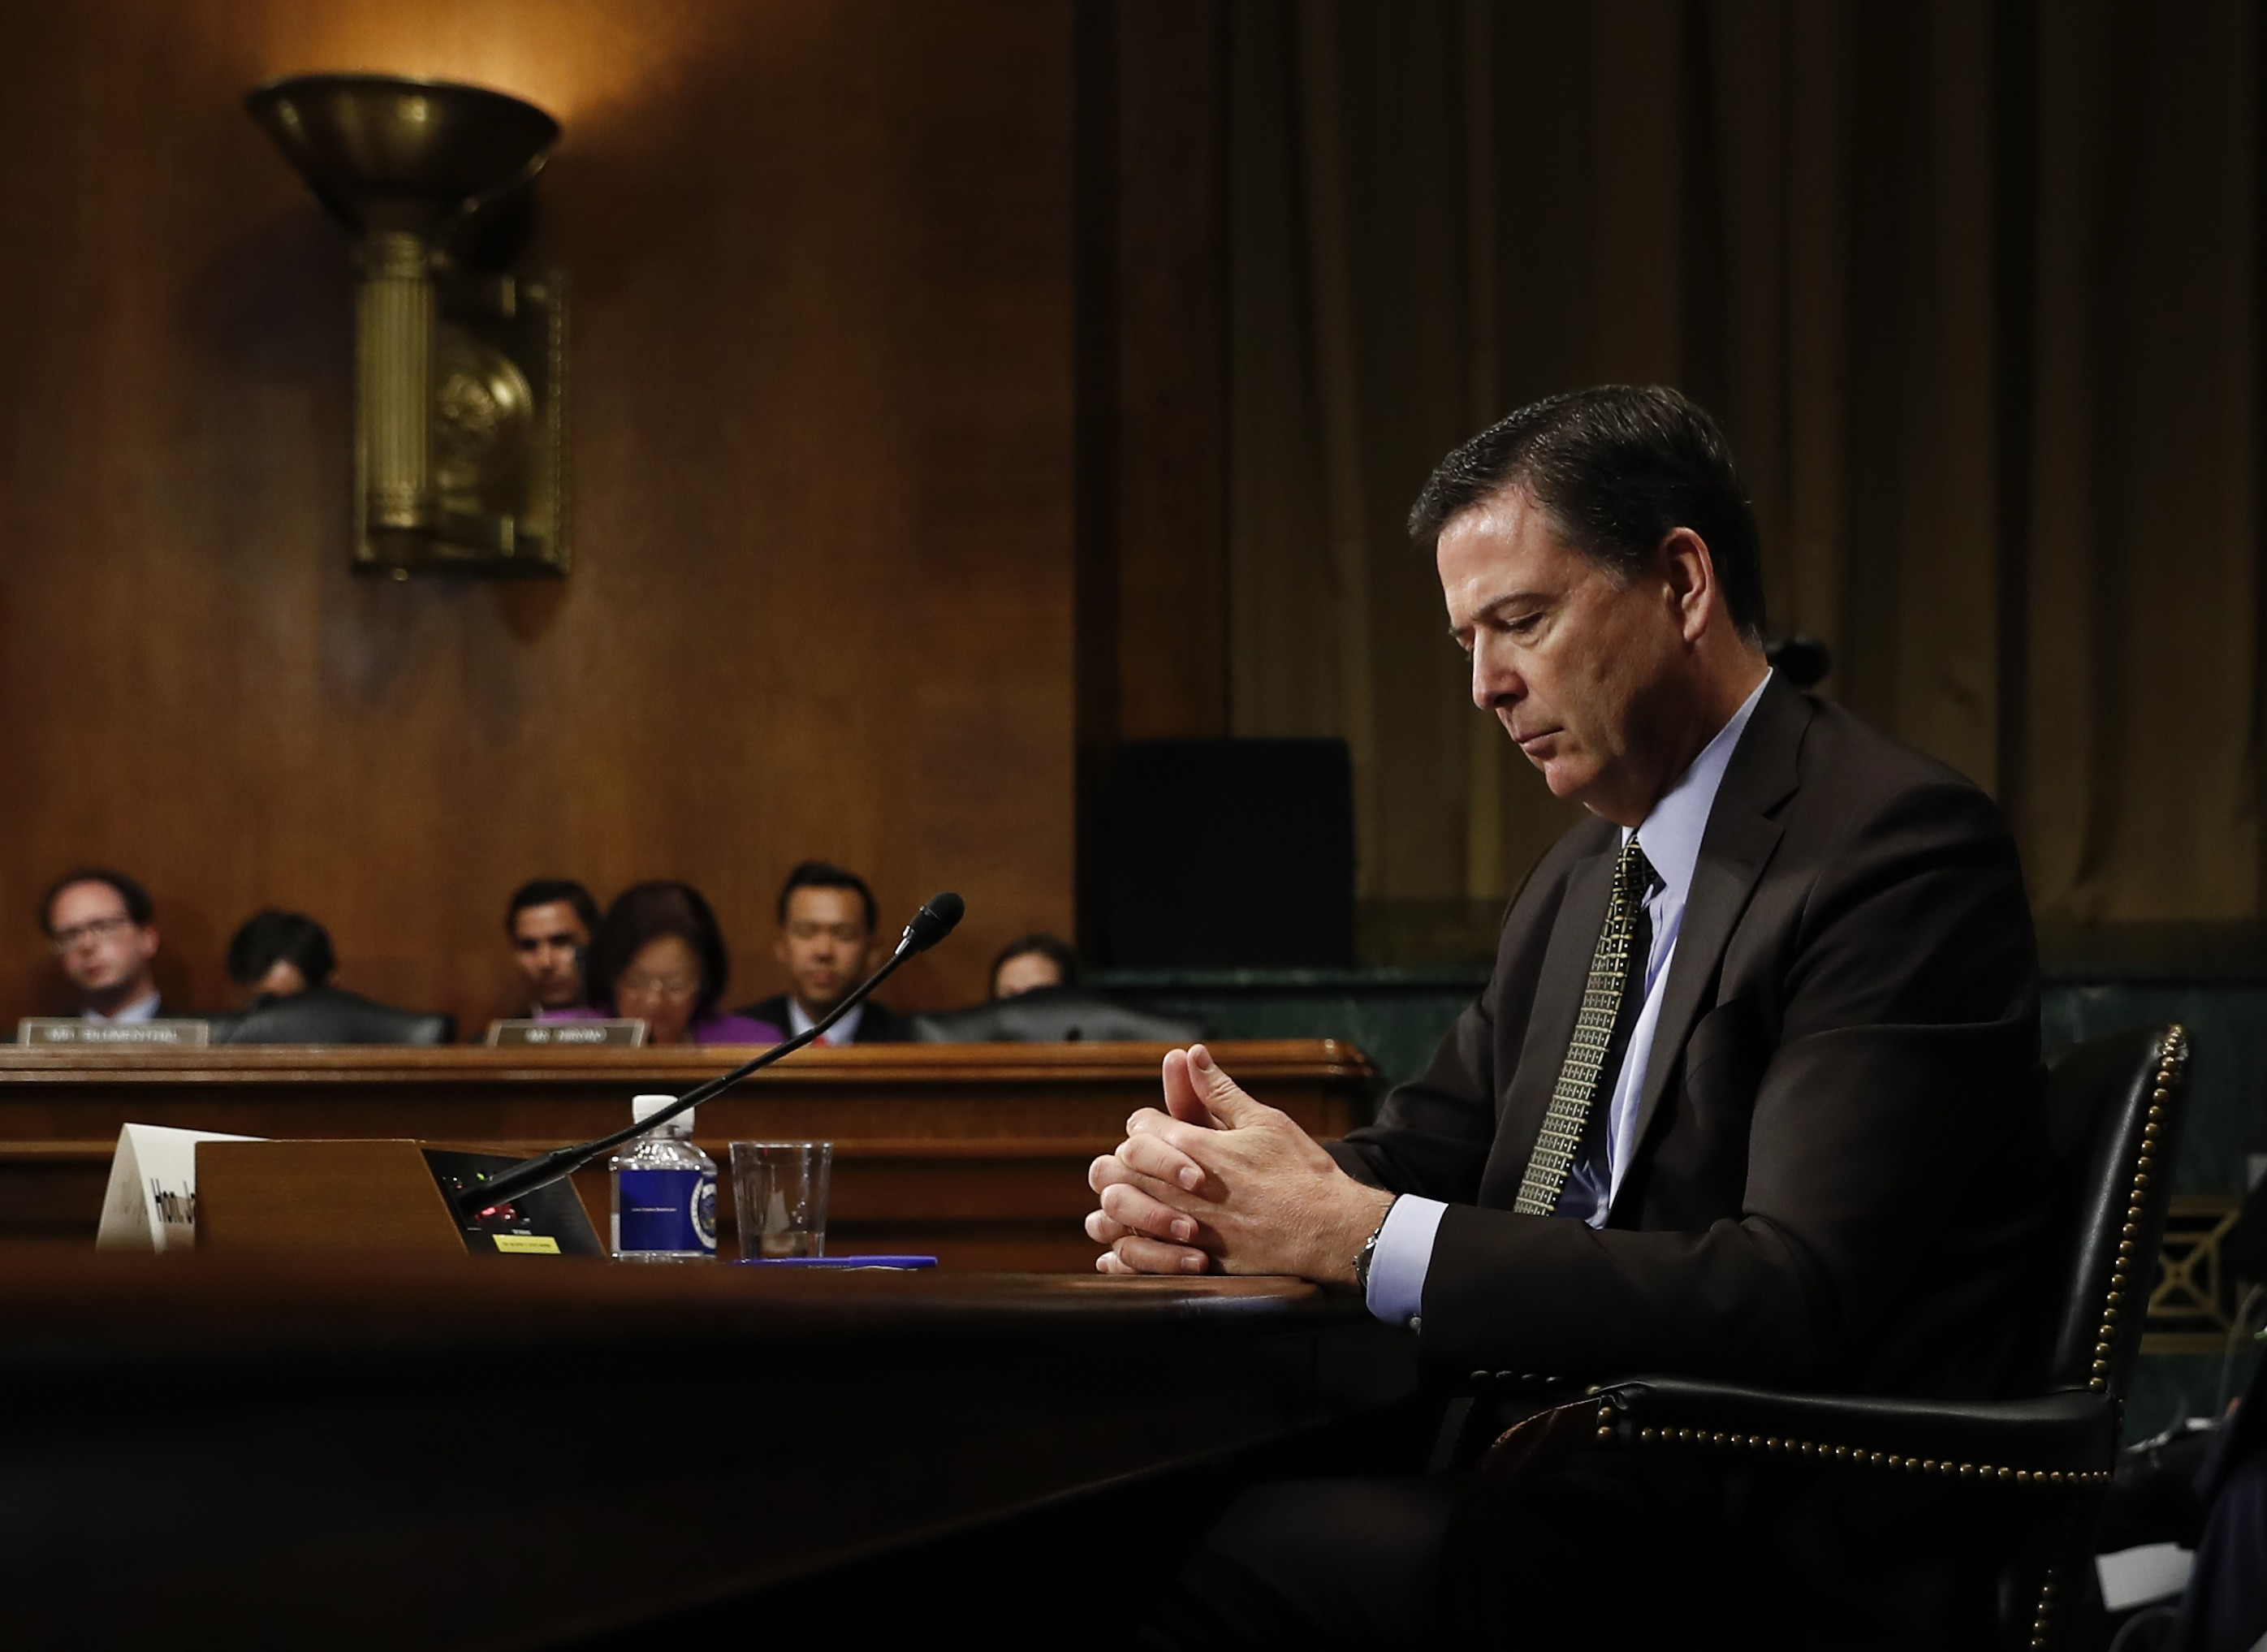 James Comey To Testify Before House Judiciary Committee